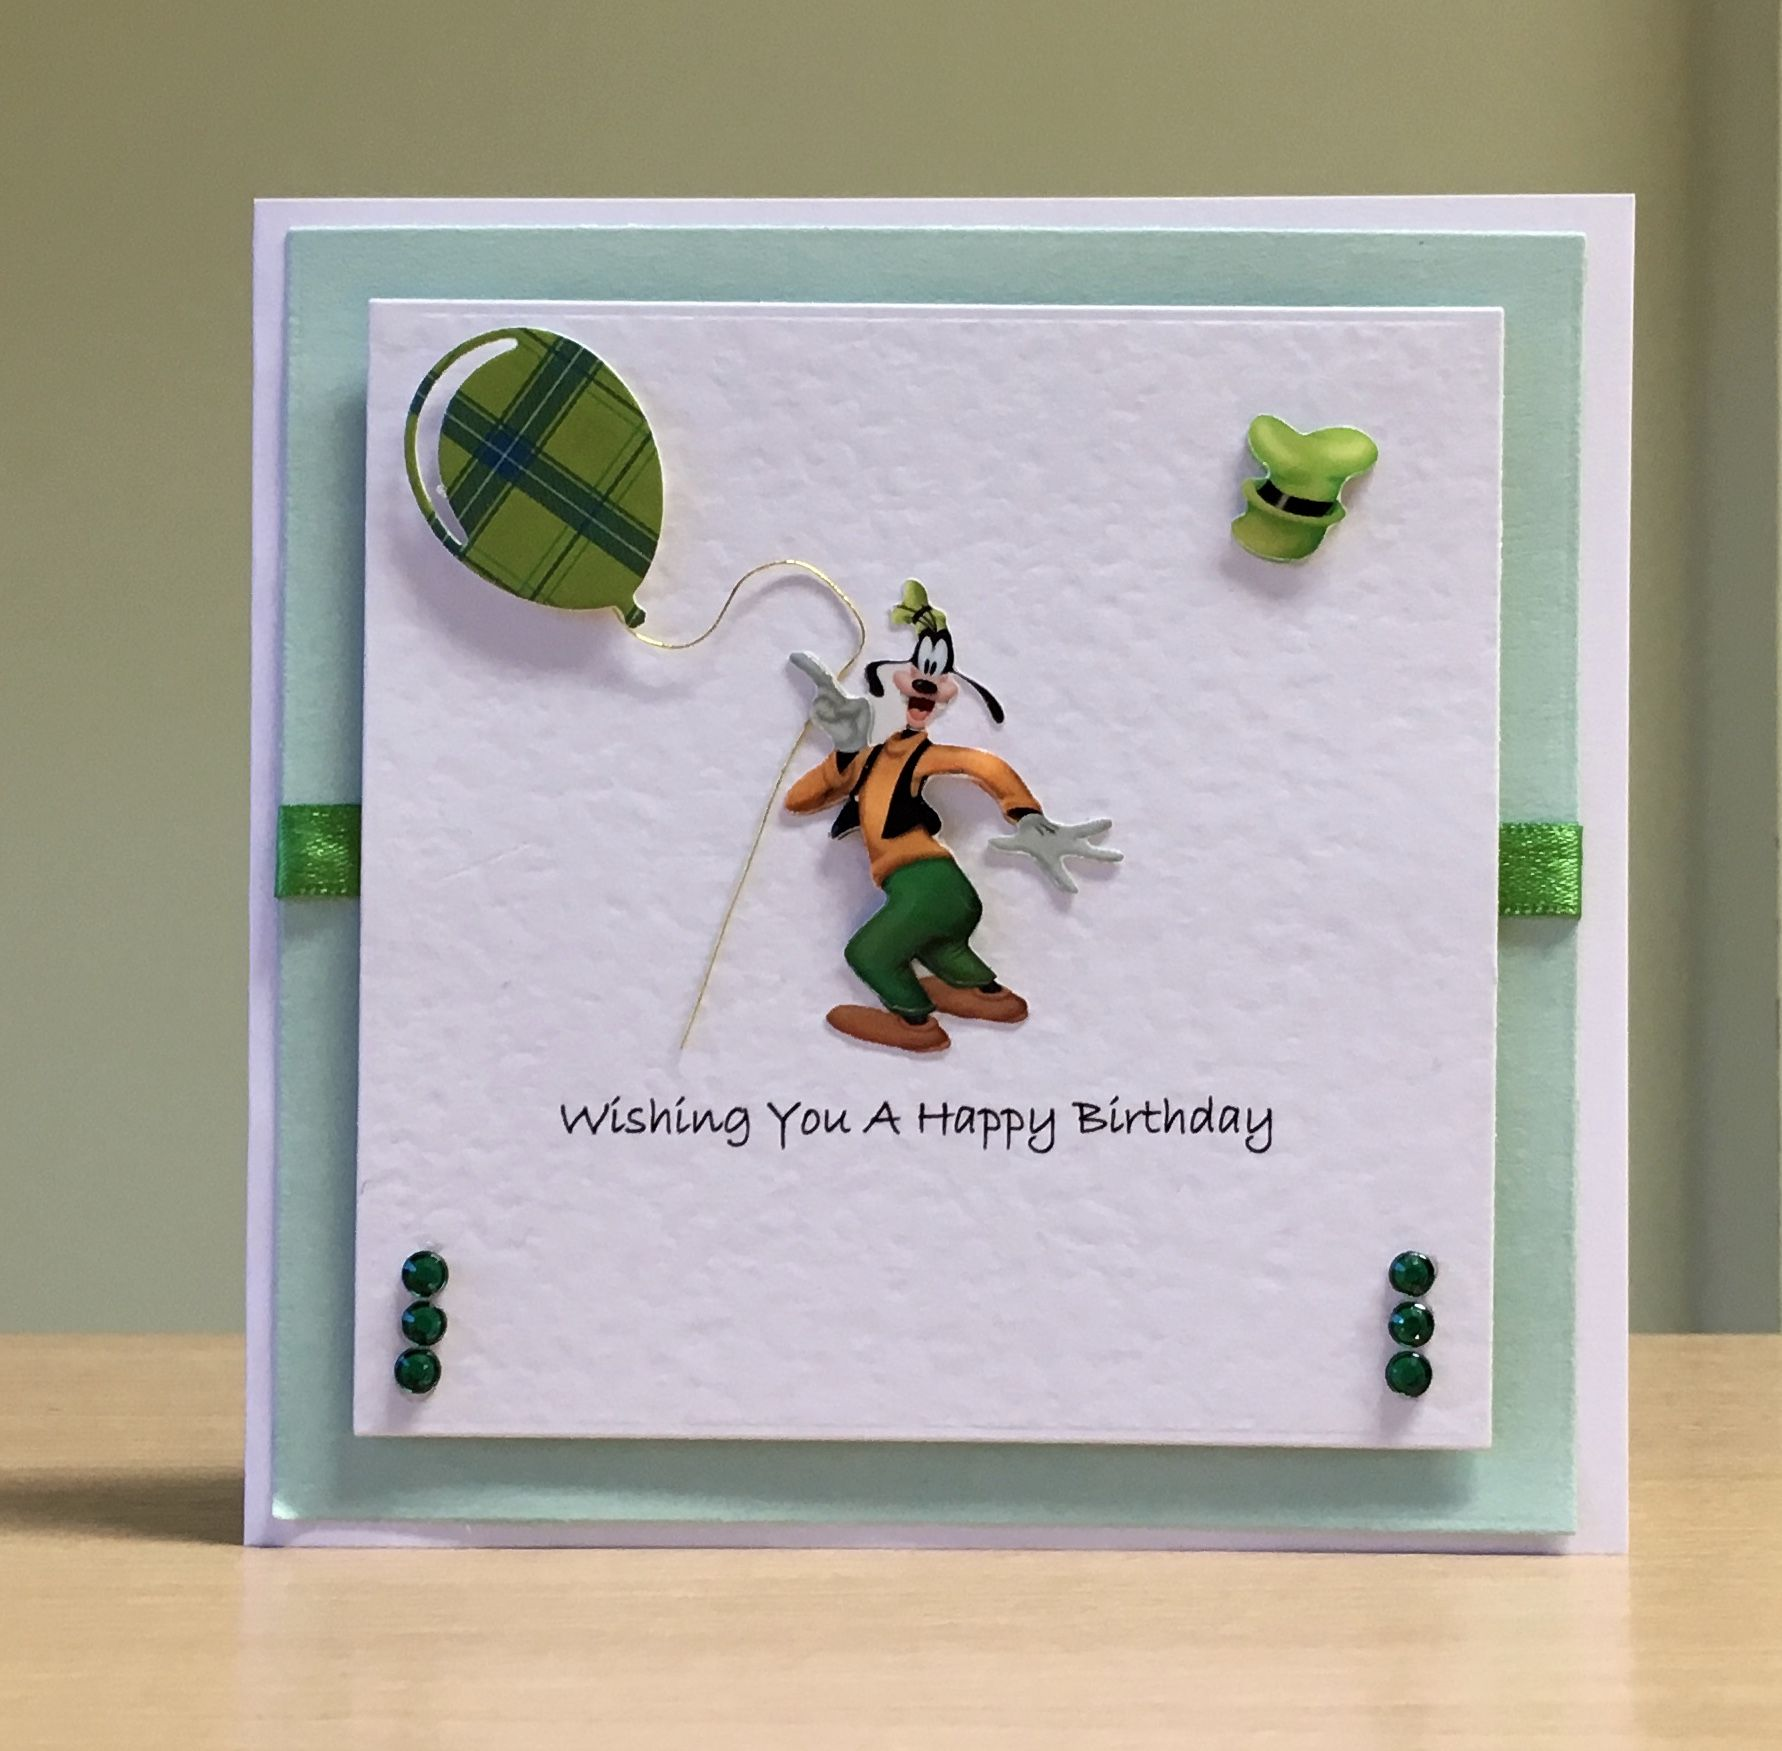 Birthday Card Handmade Disney Goofy Embellishment For More Of My Cards Please Visit Craftycardstudio On Ets Handmade Craft Cards Cards Handmade Cute Cards